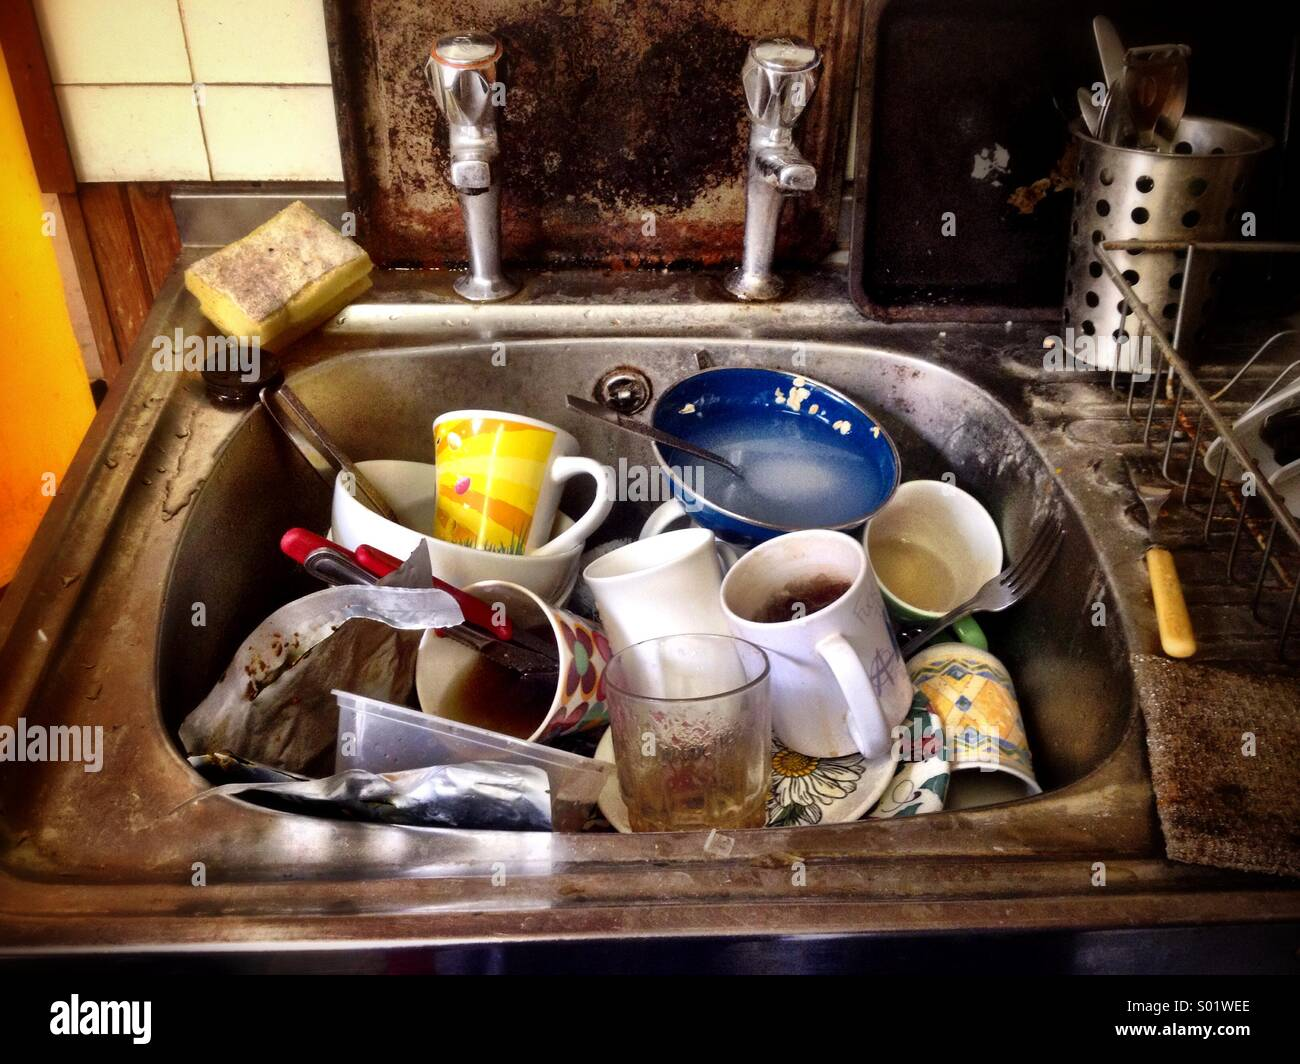 Washing up in a squalid student flat - Stock Image